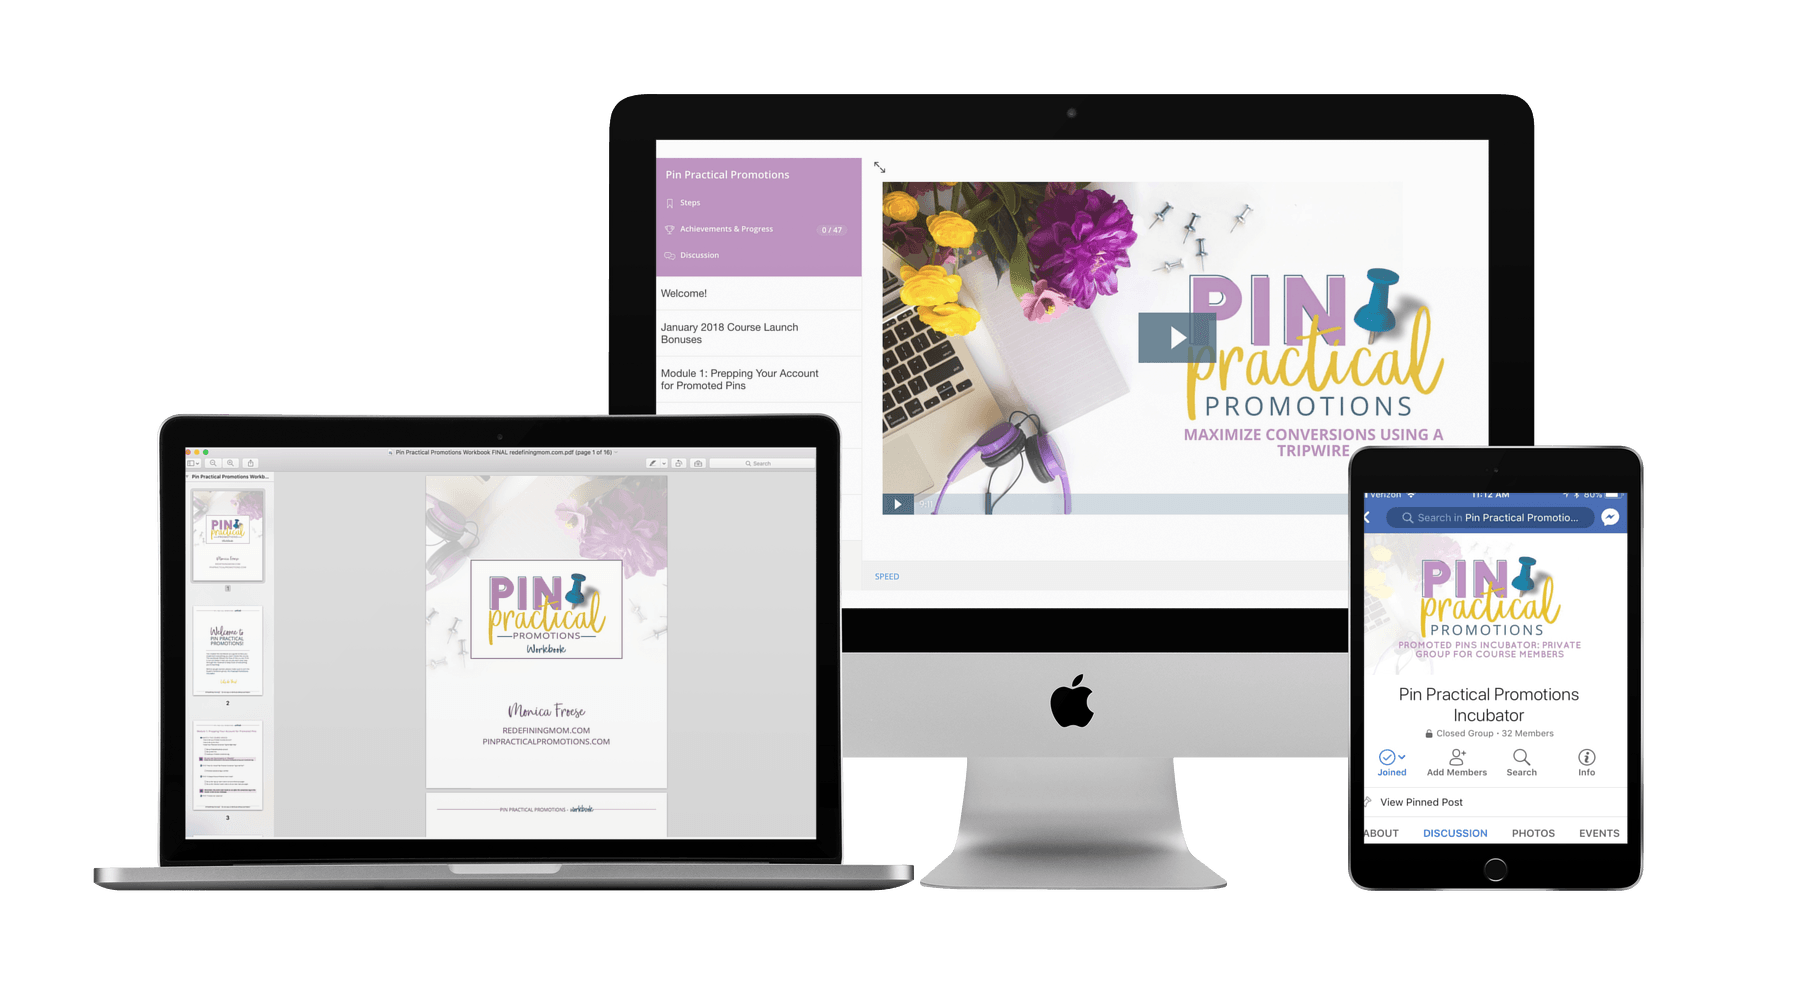 Pin Practical Promotions is the best Pinterest ads course, an advanced-level course on running successful promoted pin campaigns